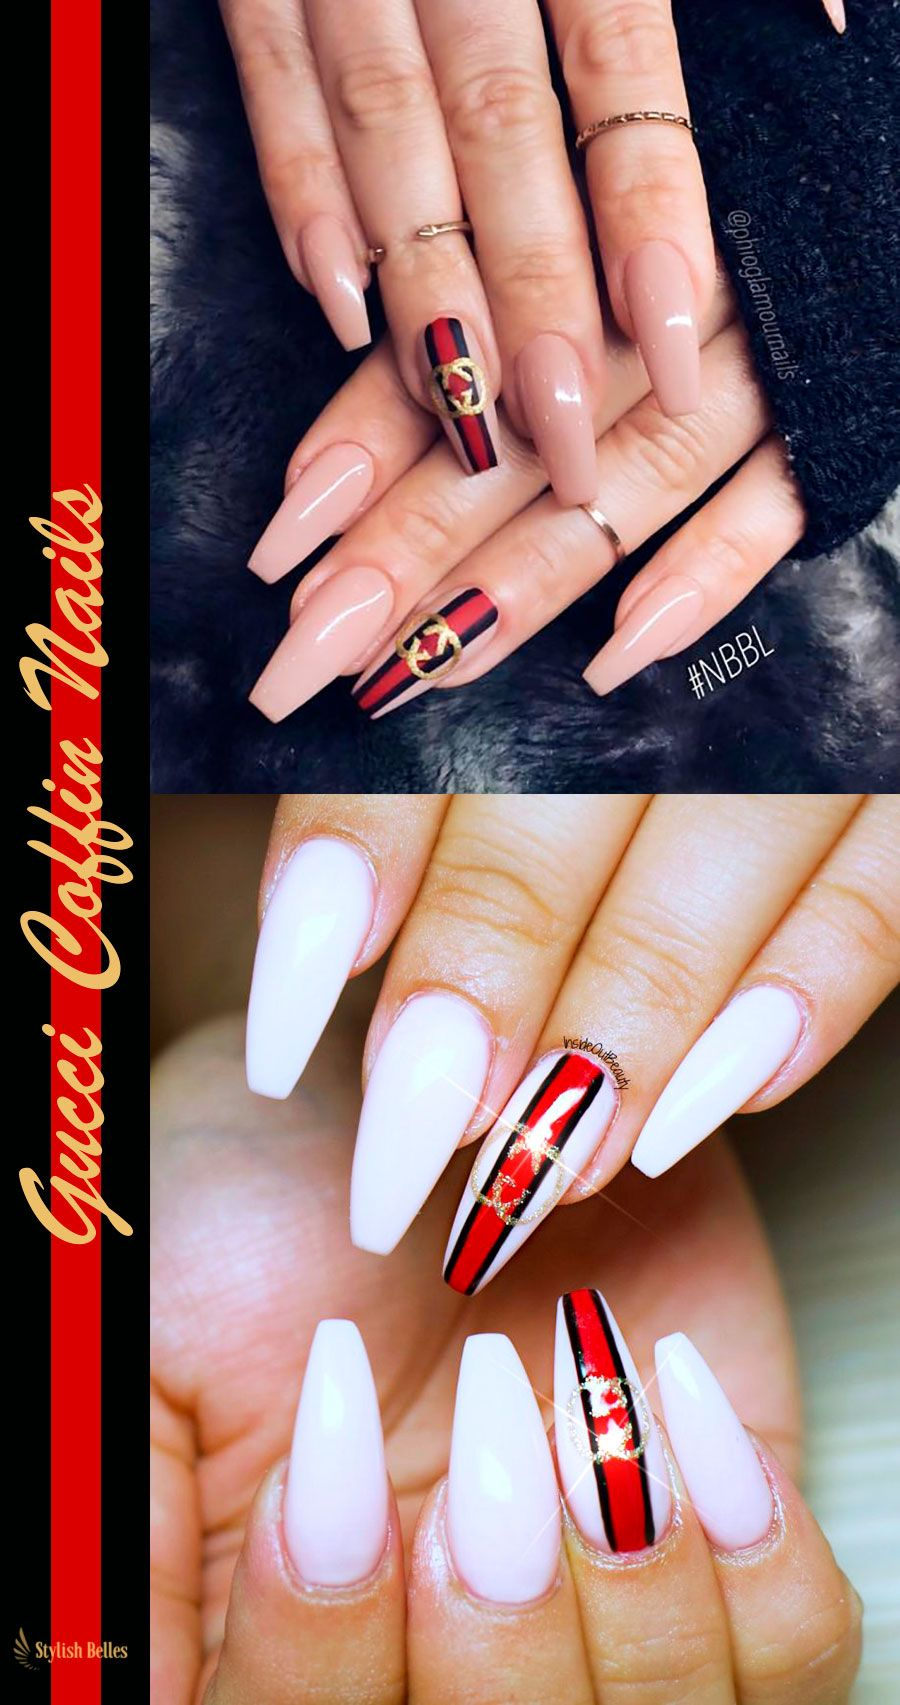 512be0c274 The Best Coffin Nails Ideas That Suit Everyone | Unhas kika | Unhas ...